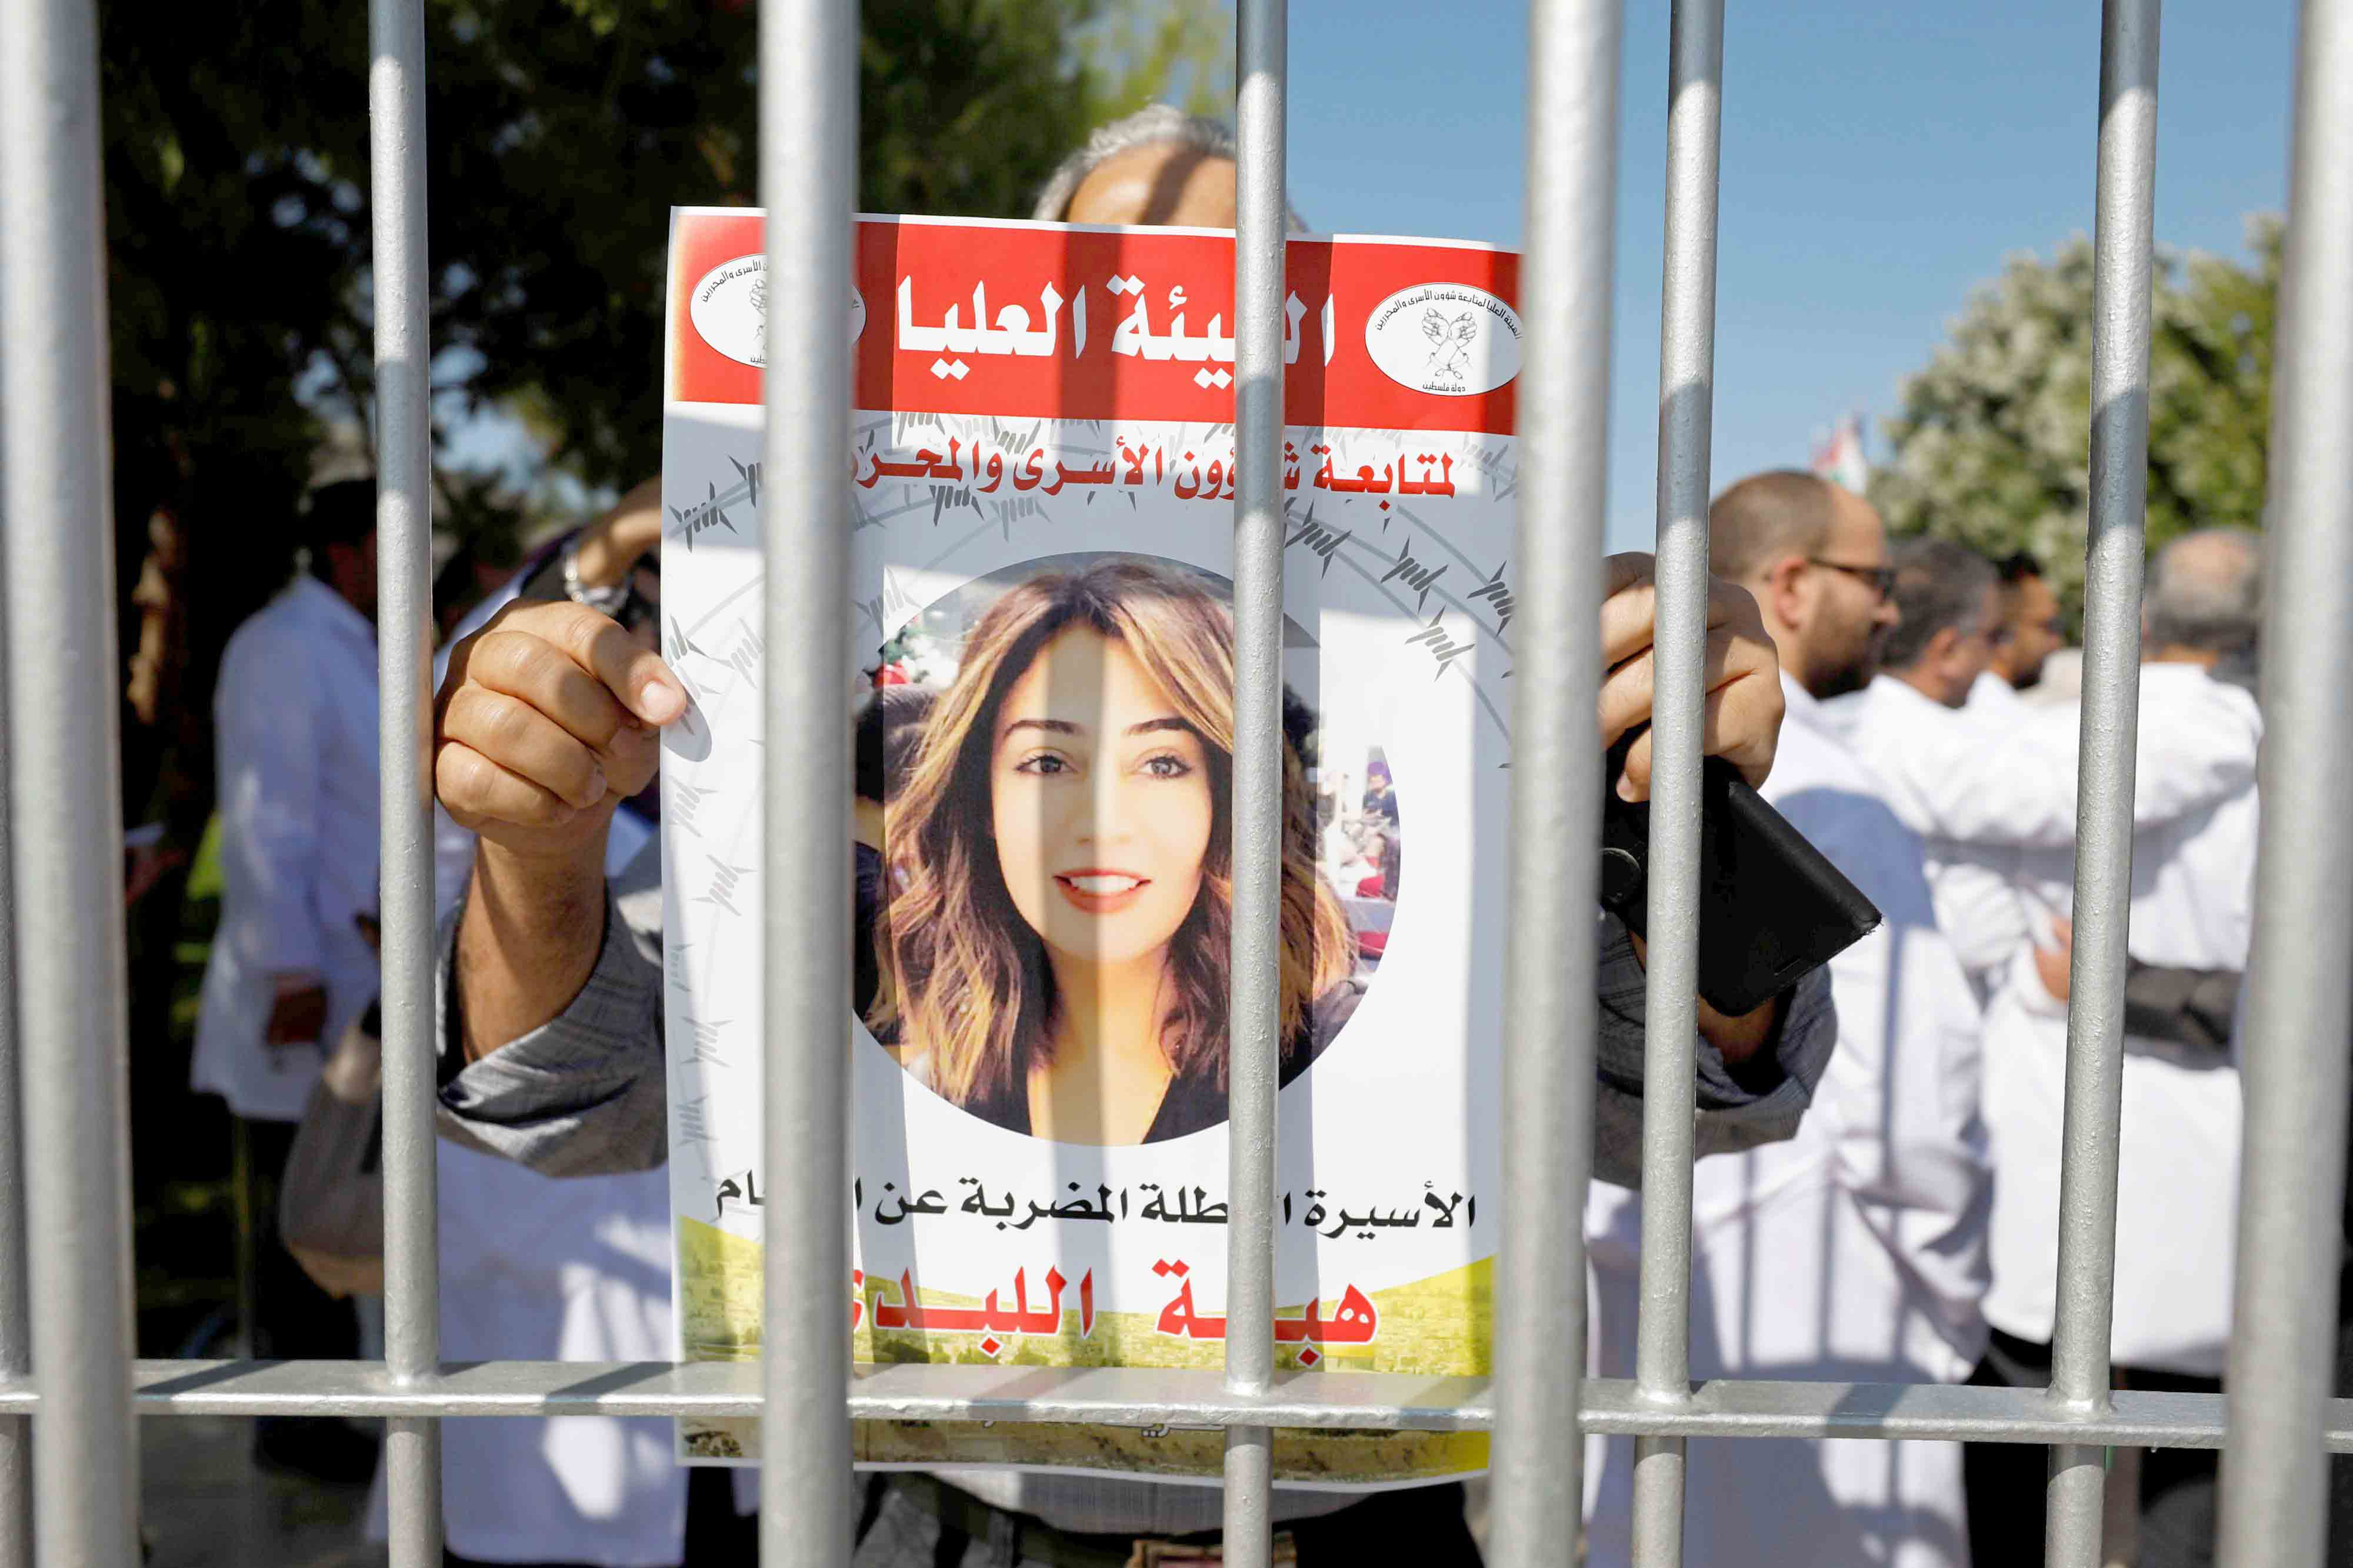 A demonstrator holds a picture of Jordanian citizen Hiba al-Labadi during a protest in Ramallah in the Israeli-occupied West Bank, October 31. (Reuters)